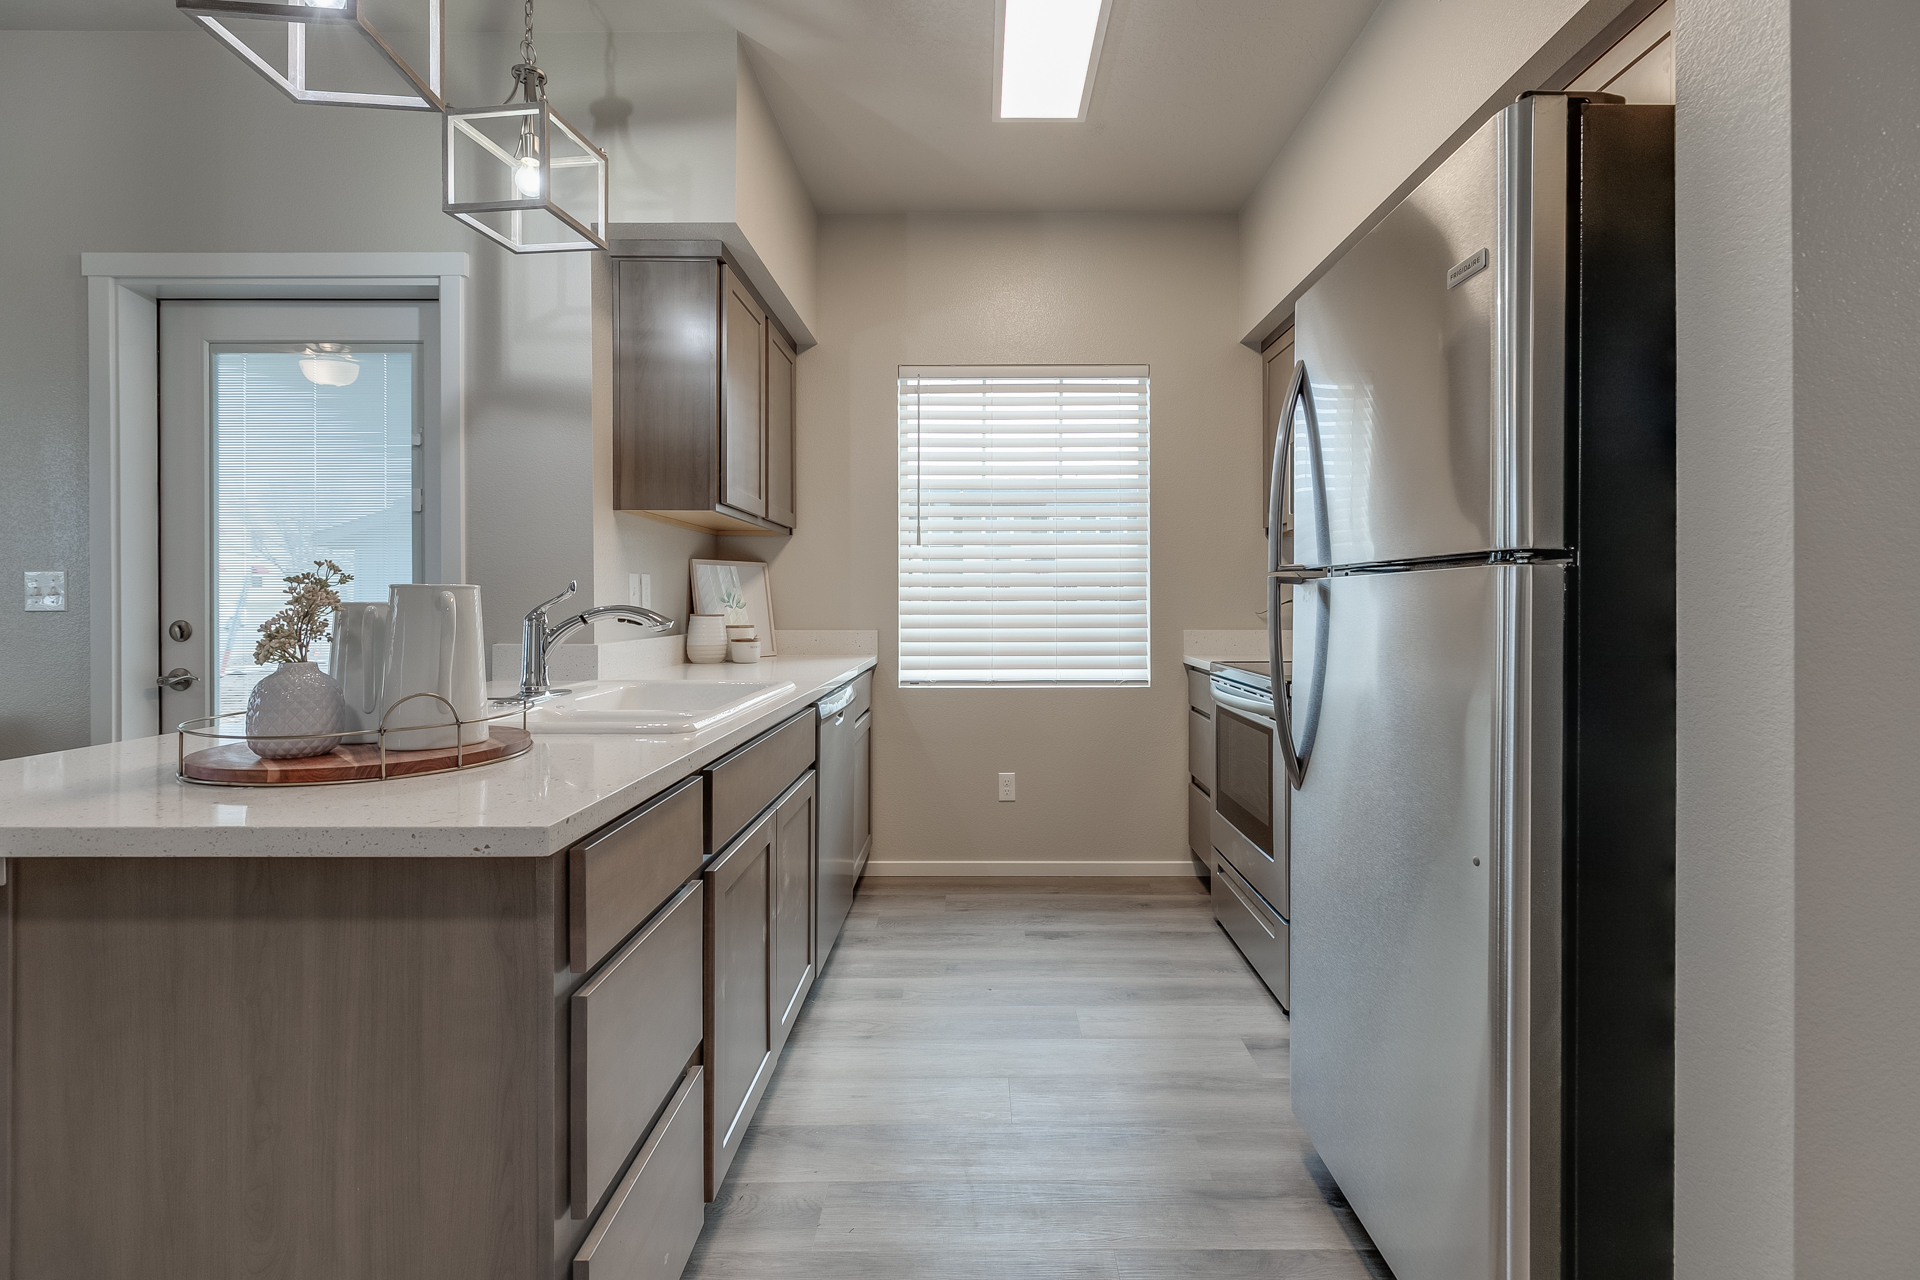 12 Oaks at Ten Mile - CBH Homes - New Homes Boise - Interior Selections